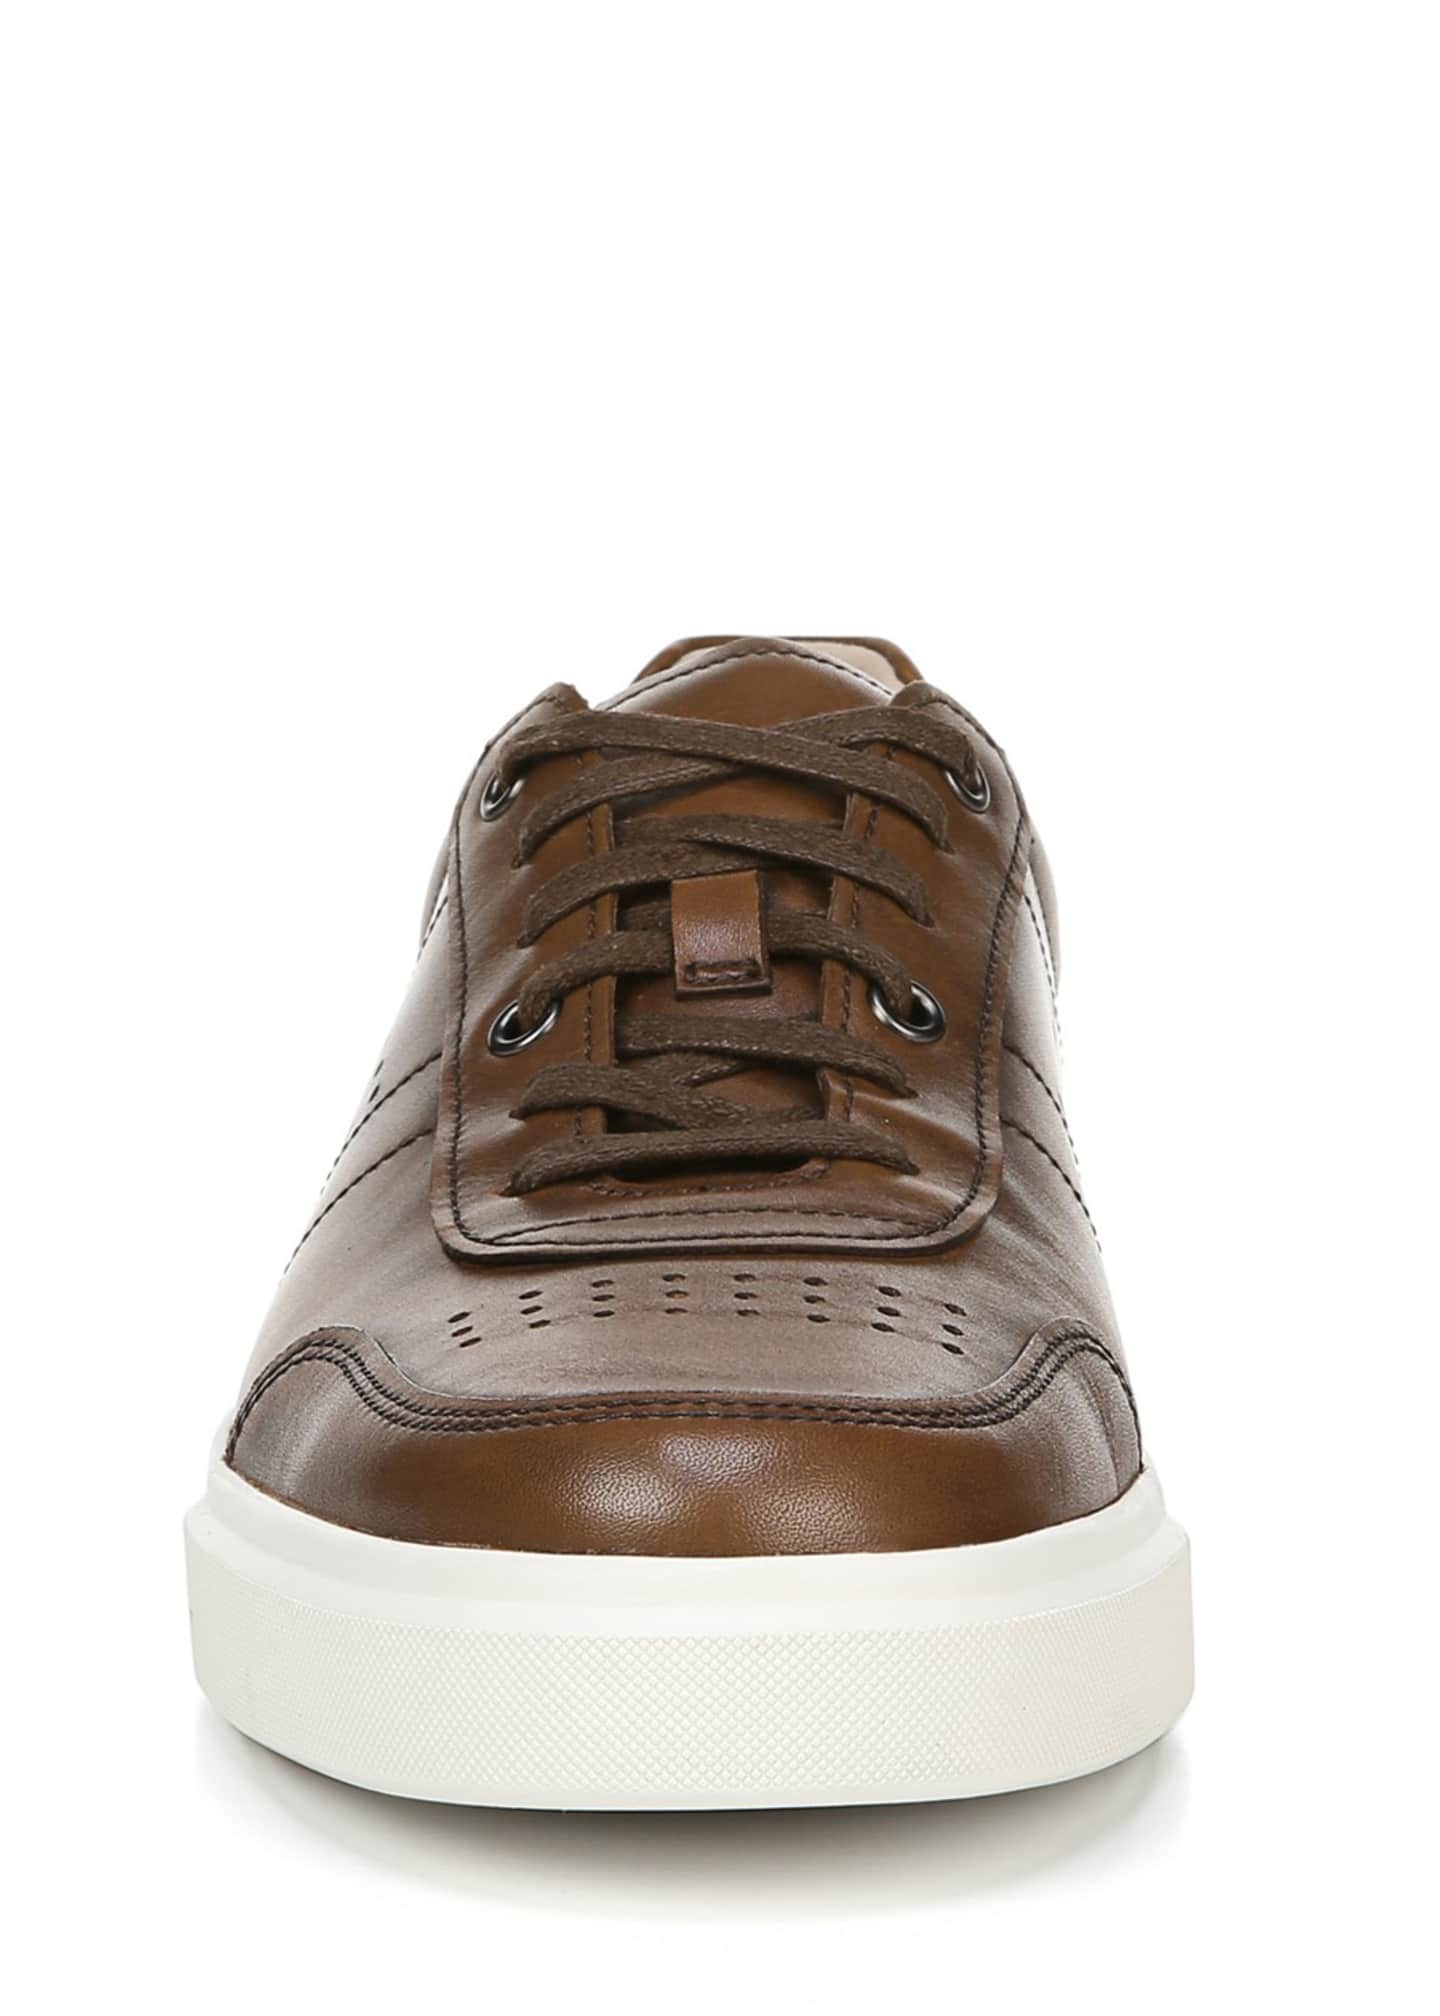 Image 5 of 5: Men's Barnett Perforated Leather Low-Top Sneakers